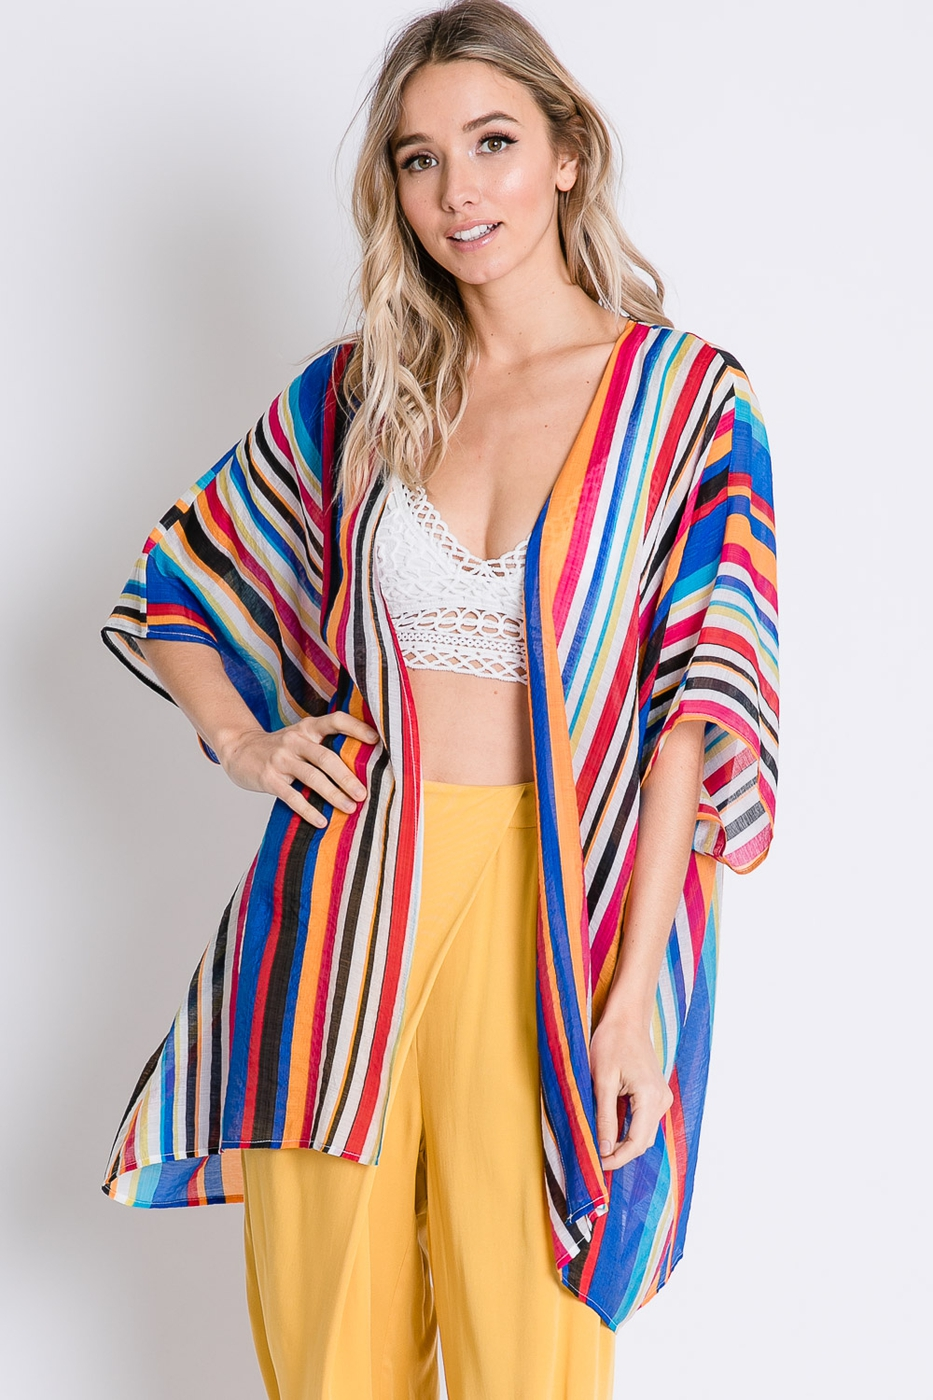 VIVID STRIPED SHEER KIMONO CARDIGAN - orangeshine.com